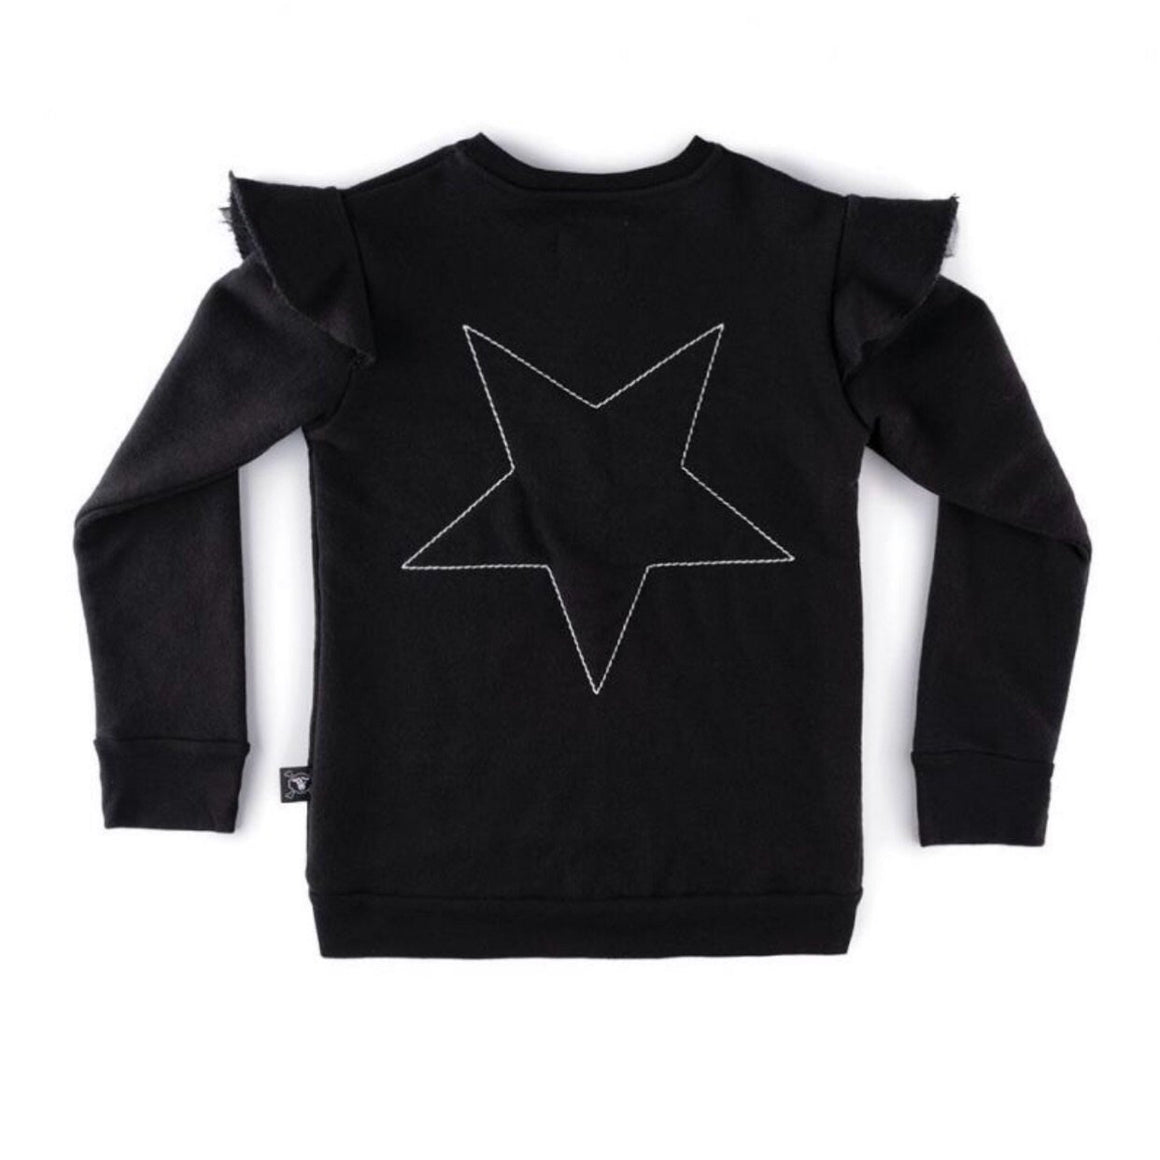 NU2317 - Nununu Girl's Embroidered Star Sweatshirt - Black Sweatshirt Nununu